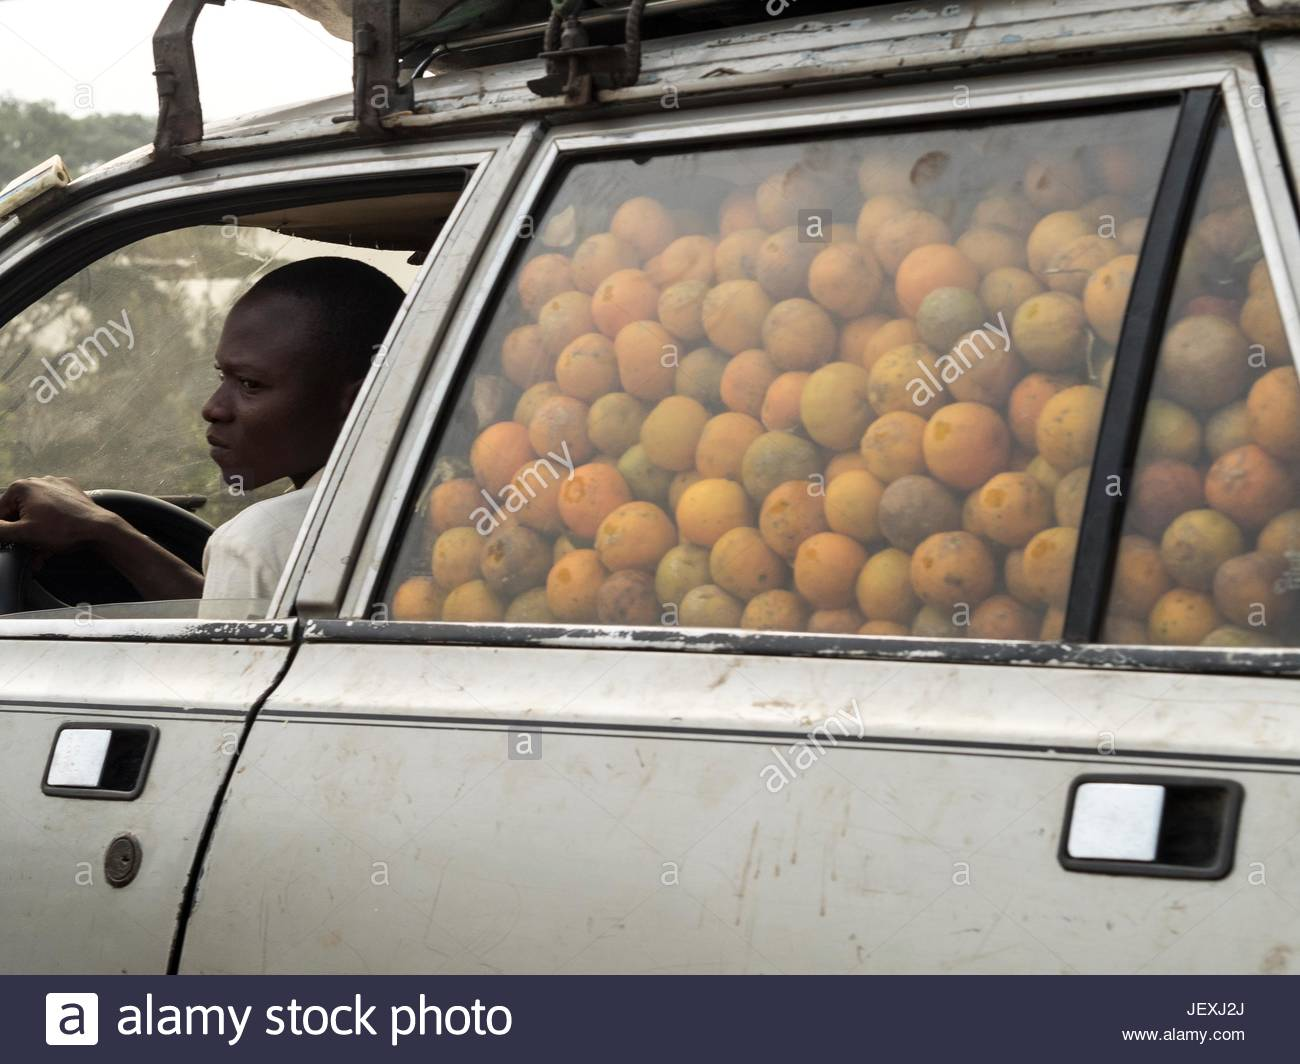 A man drives a car filled with oranges. - Stock Image